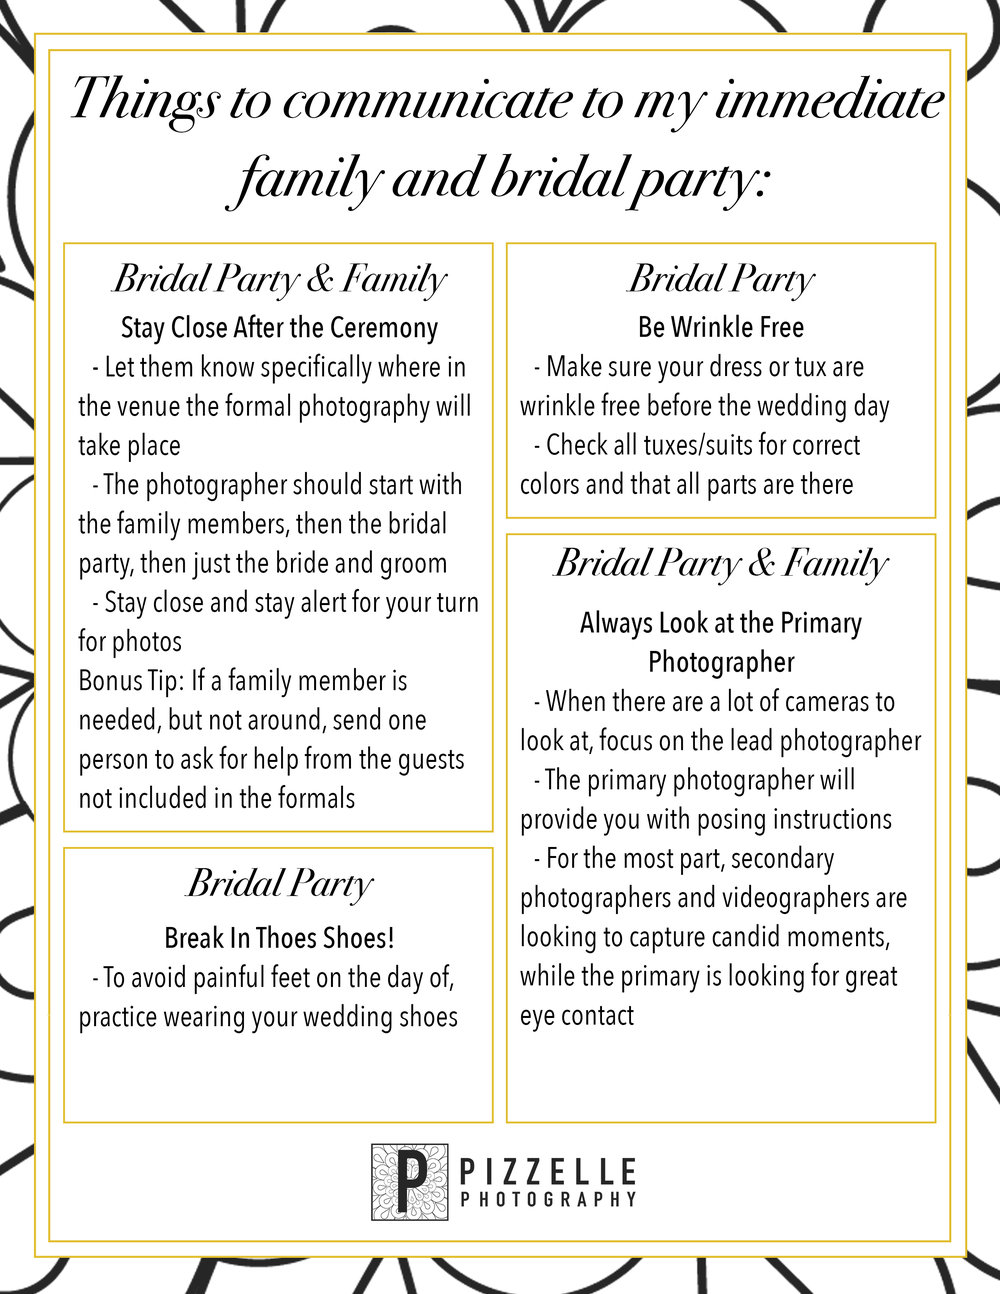 Pizzelle Photography - What to tell your bridal party.jpg